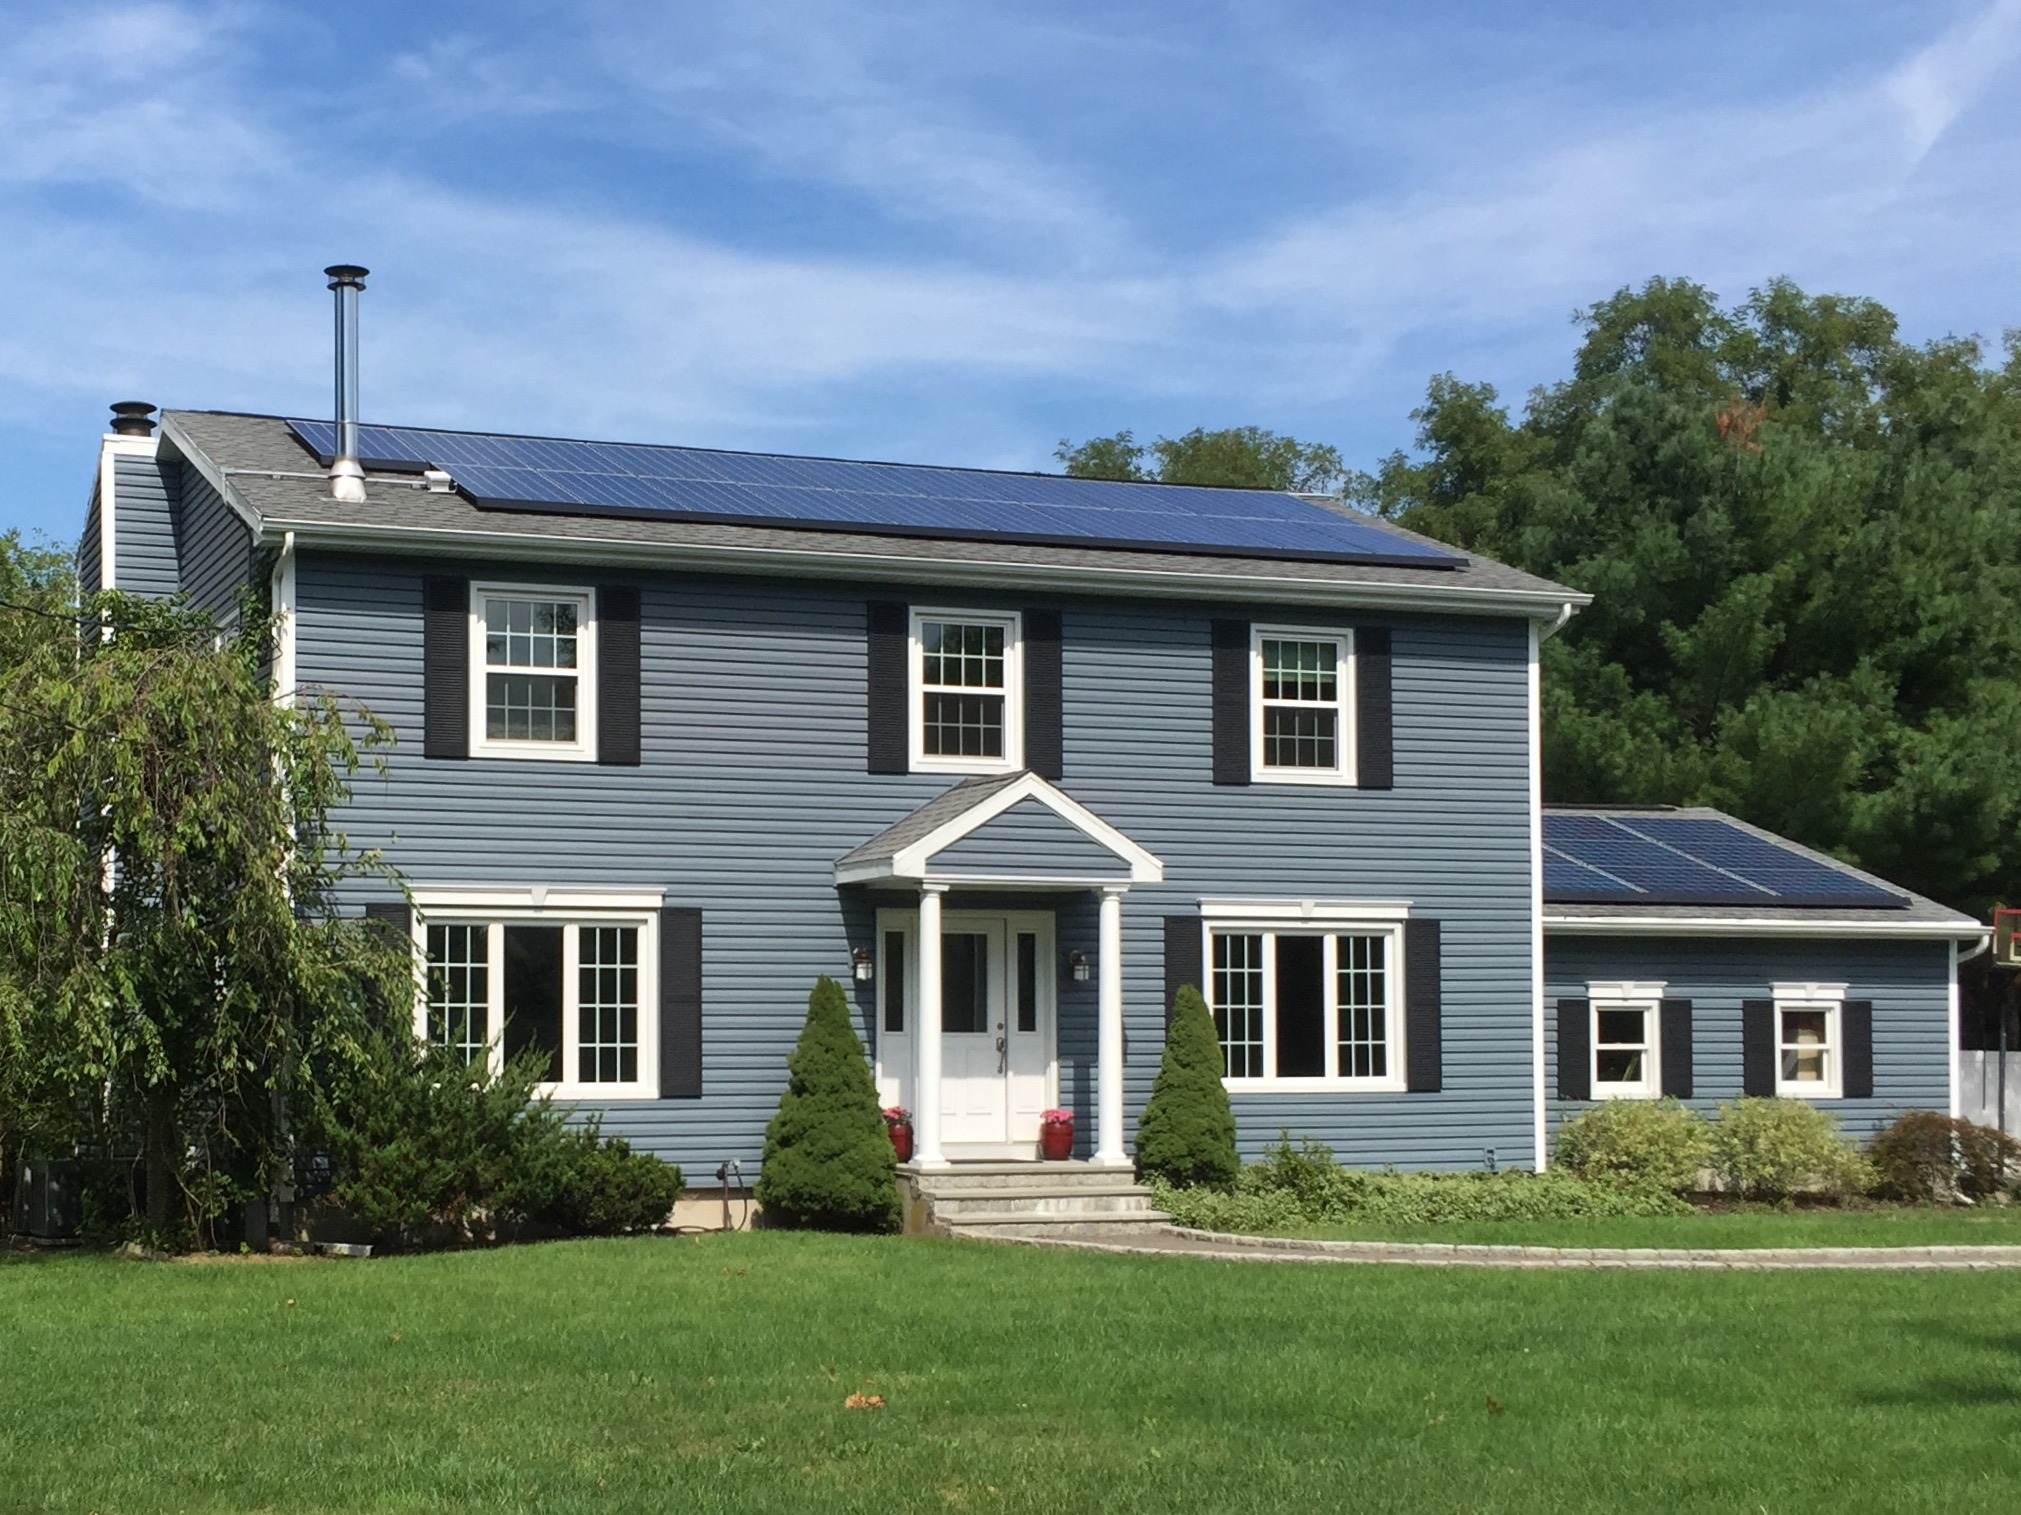 Classic Home Plans Harbor Blue Siding Alpha Harbor Blue Vinyl Siding